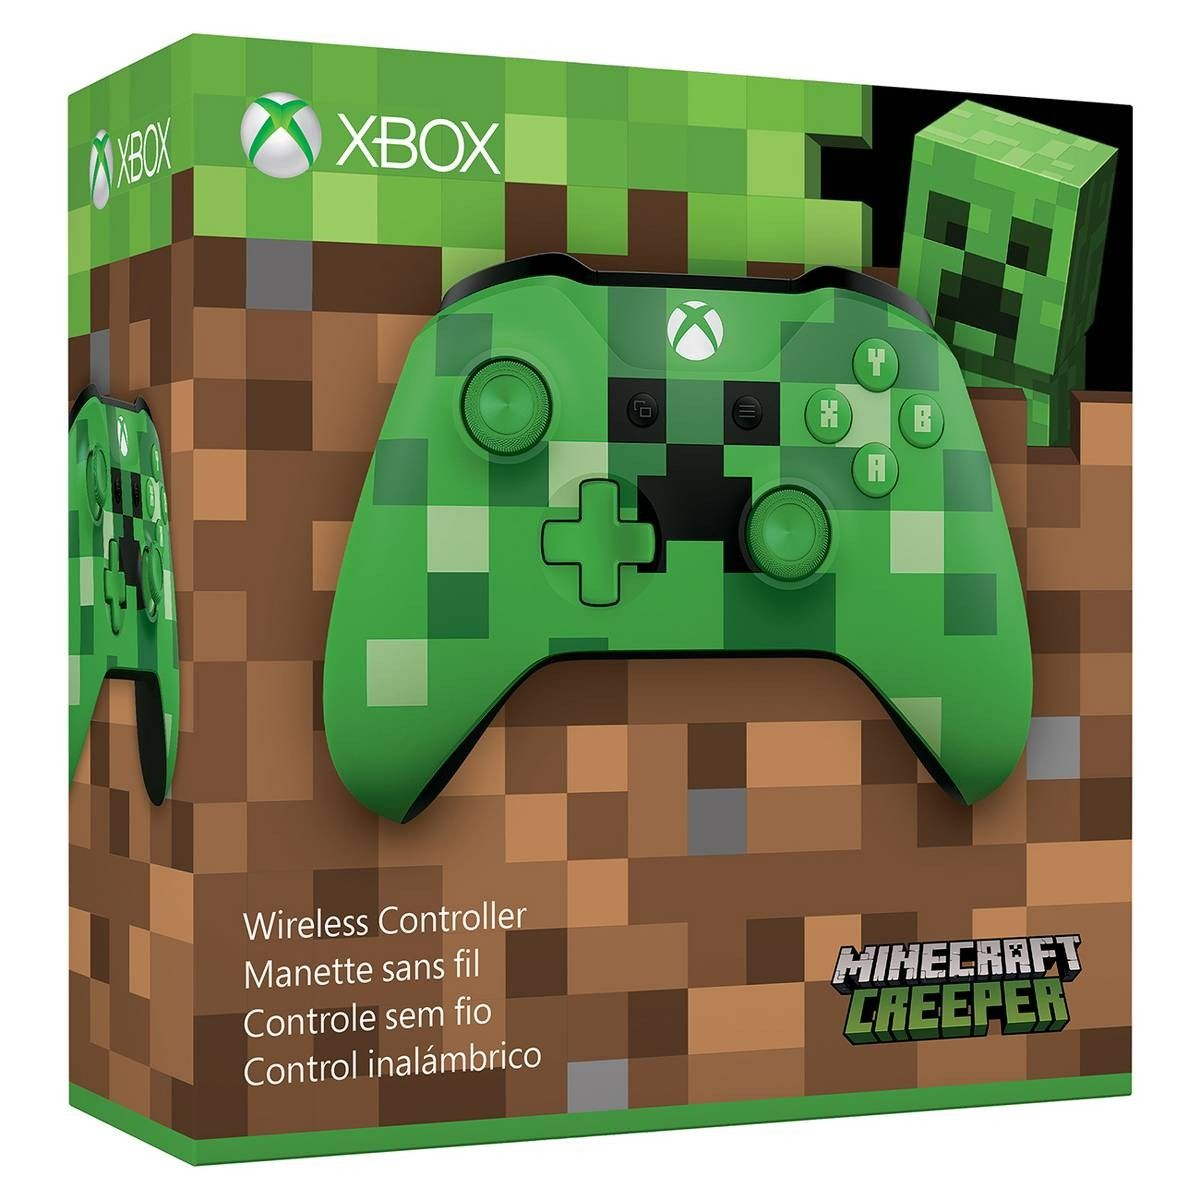 Creeper remote for the xbox, target | H & K gift ideas